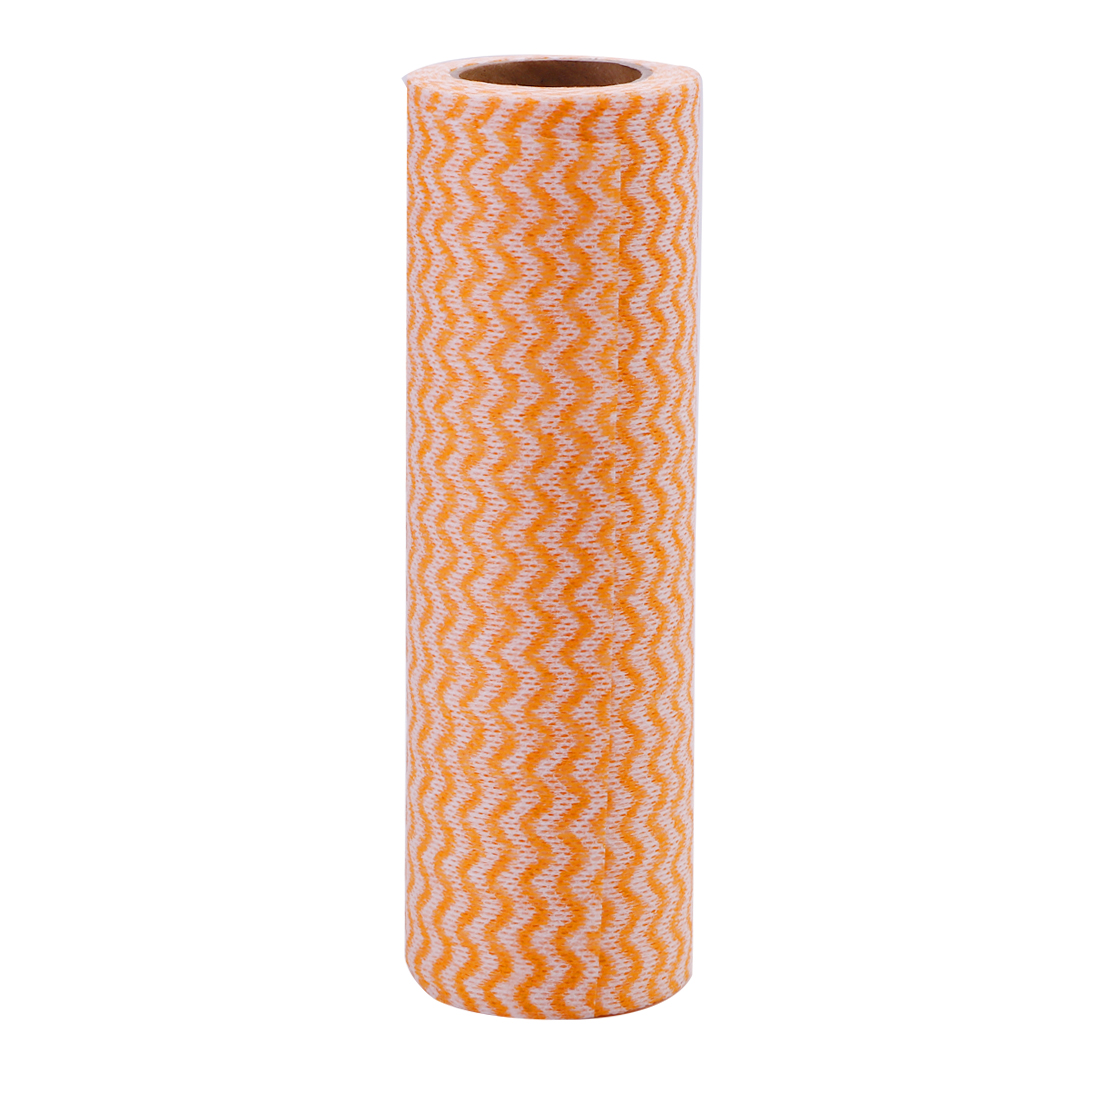 Home Non-woven Fabric Wave Print Bowl Dish Washable Cleaning Cloth Roll Orange